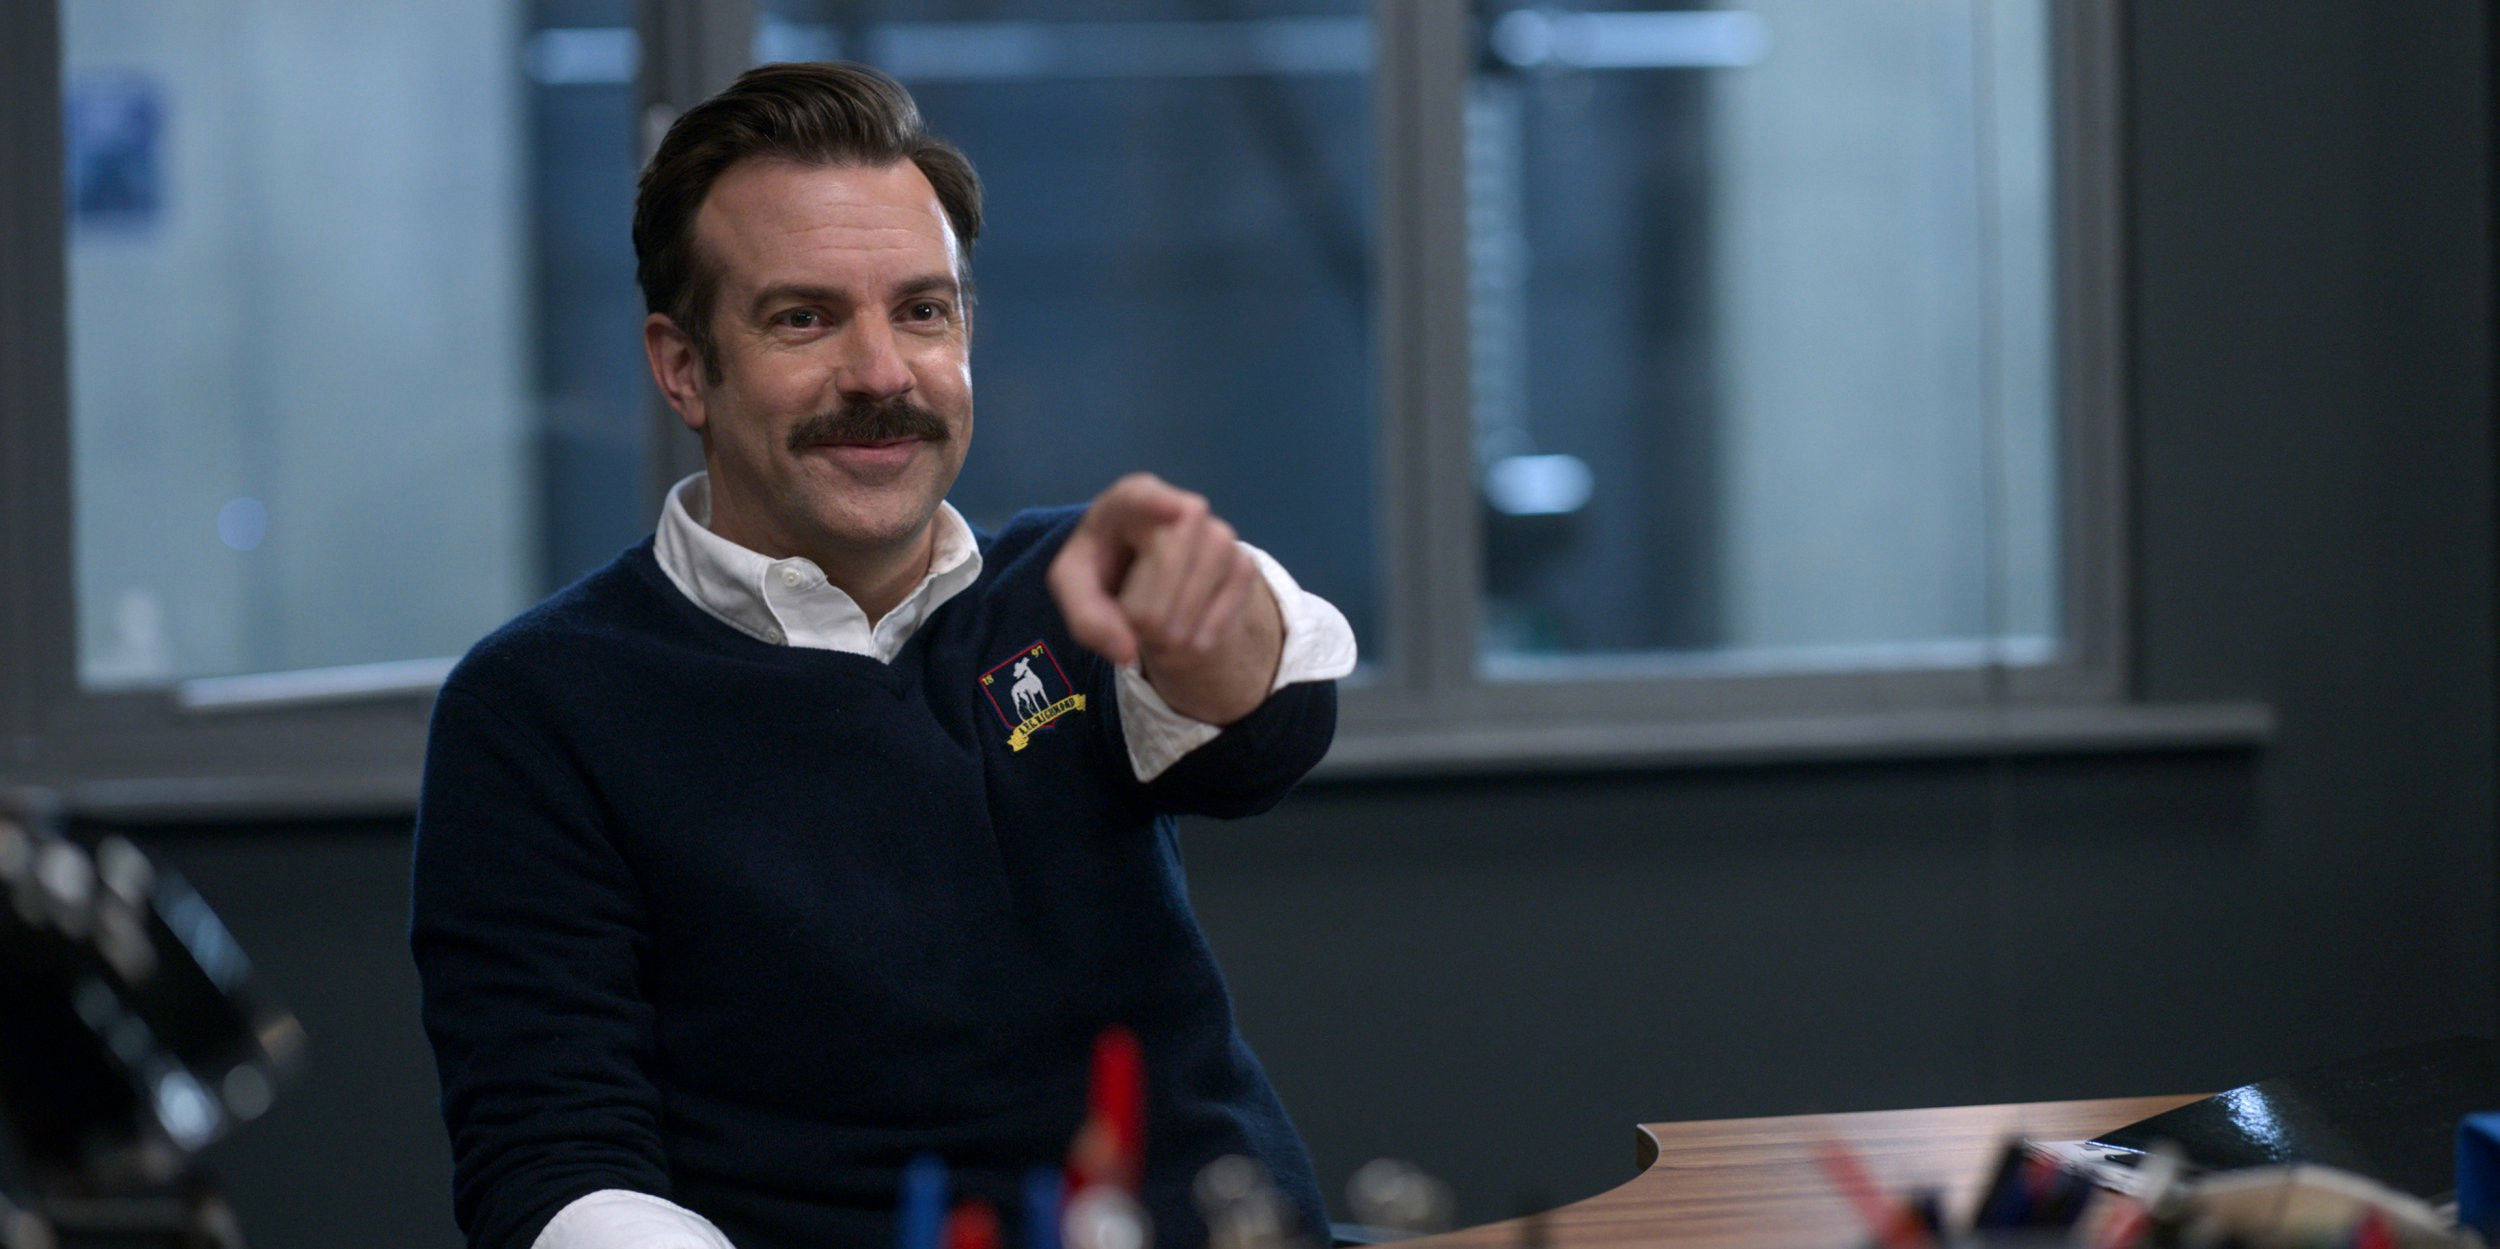 The Ted Lasso backlash is proof that the world still needs his positivity